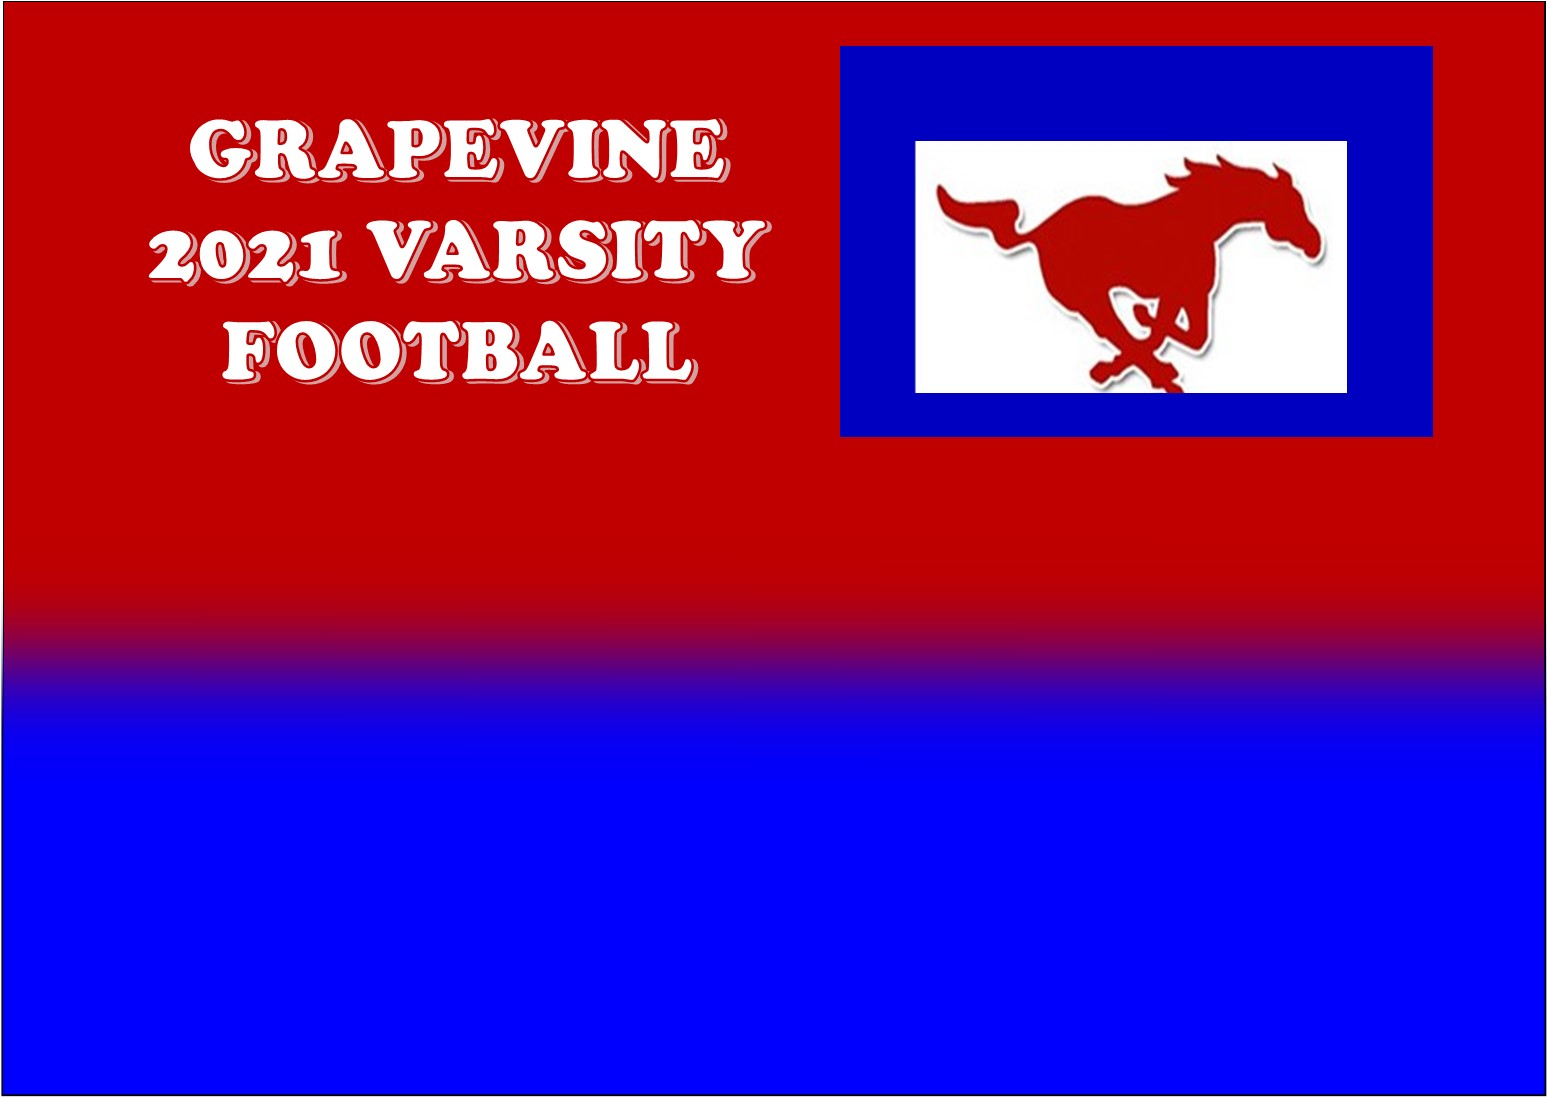 GCISD Football:  Grapevine Mustangs Rout FW Polytechnic Parrots to Win Homecoming Game 72-10